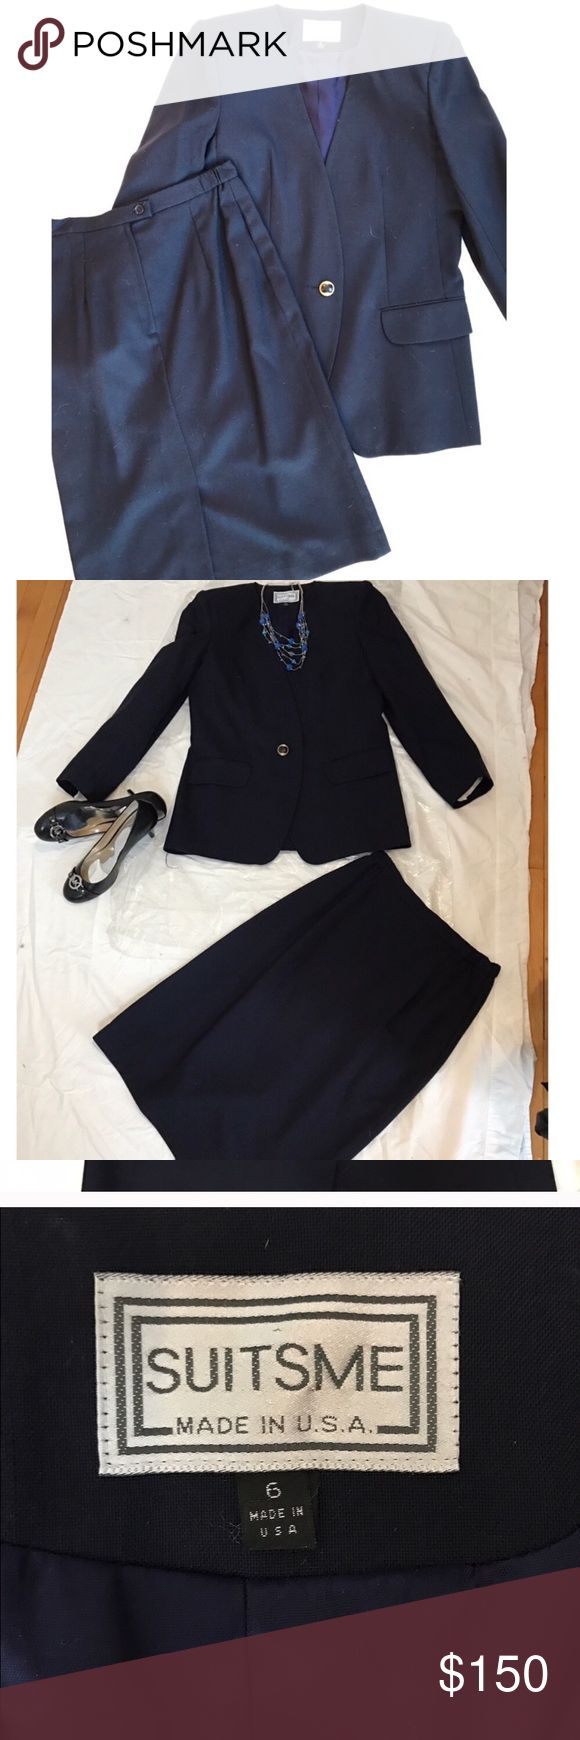 """Gorgeous vintage suit jacket and skirt set Real vintage gorgeous navy blue suit jacket and skirt set. In absolutely flawless condition. No signs of any wear, practically new- as new as something truly vintage can be. I just had the set dry cleaned and they will come still in the plastic wrapping and the hangers from the dry cleaner. Jacket has one button in the front and is complete with shoulder pads. The skirt zips in the back and is then secured with one button. Size 6. Skirt waist is 14""""…"""